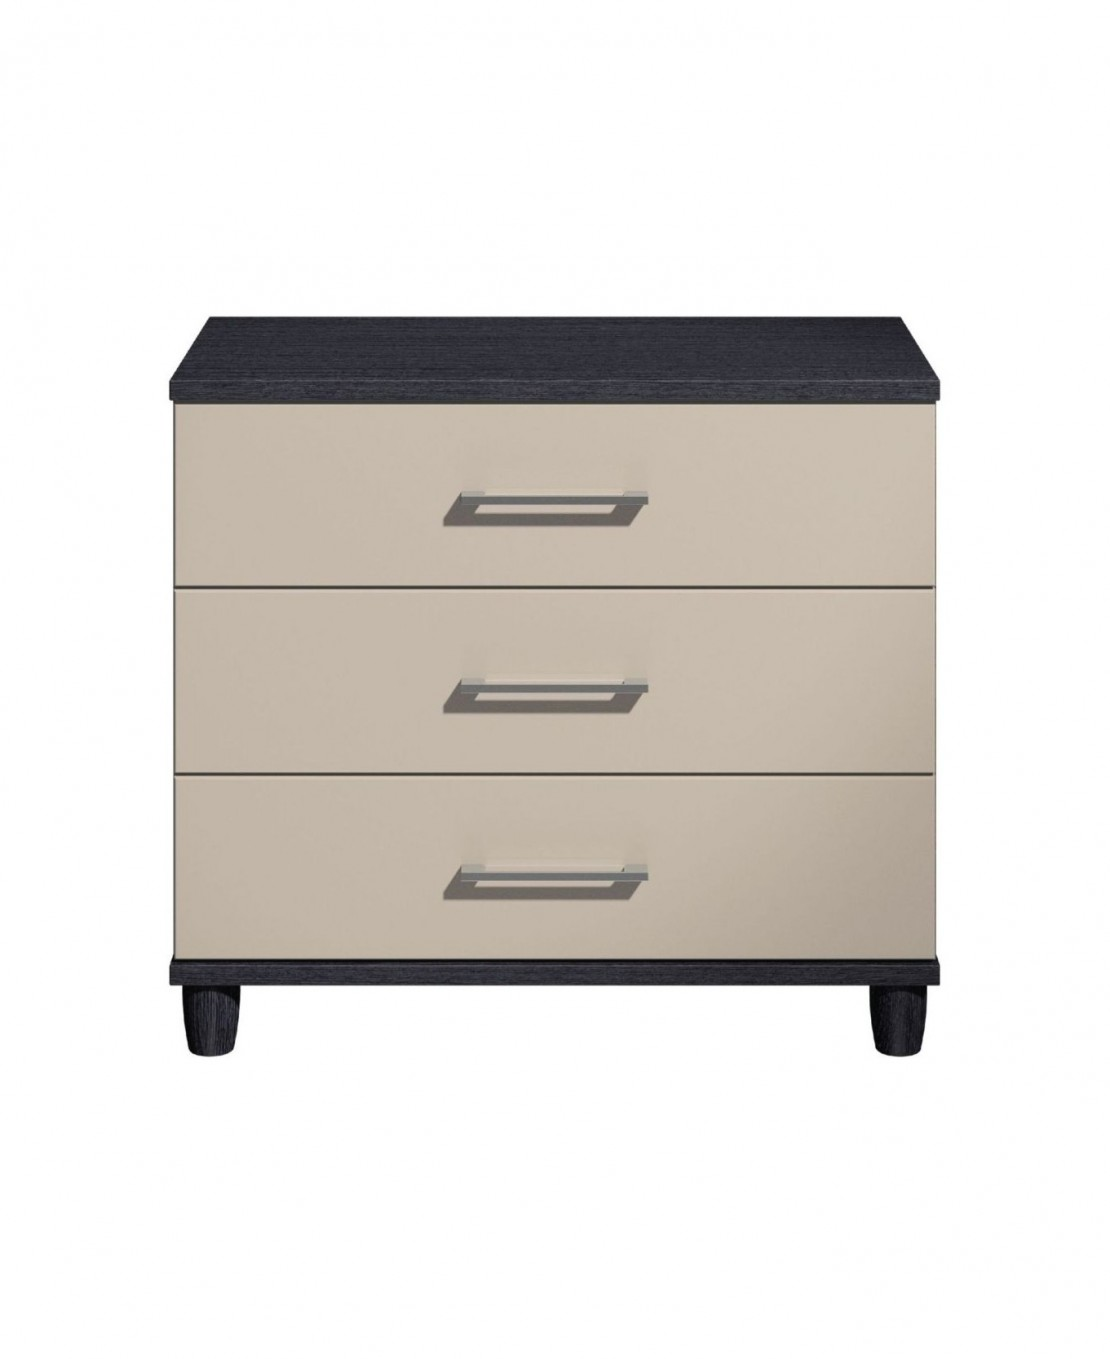 /_images/product-photos/kt-furniture-vardy-3-drawer-large-chest-grey-a.jpg